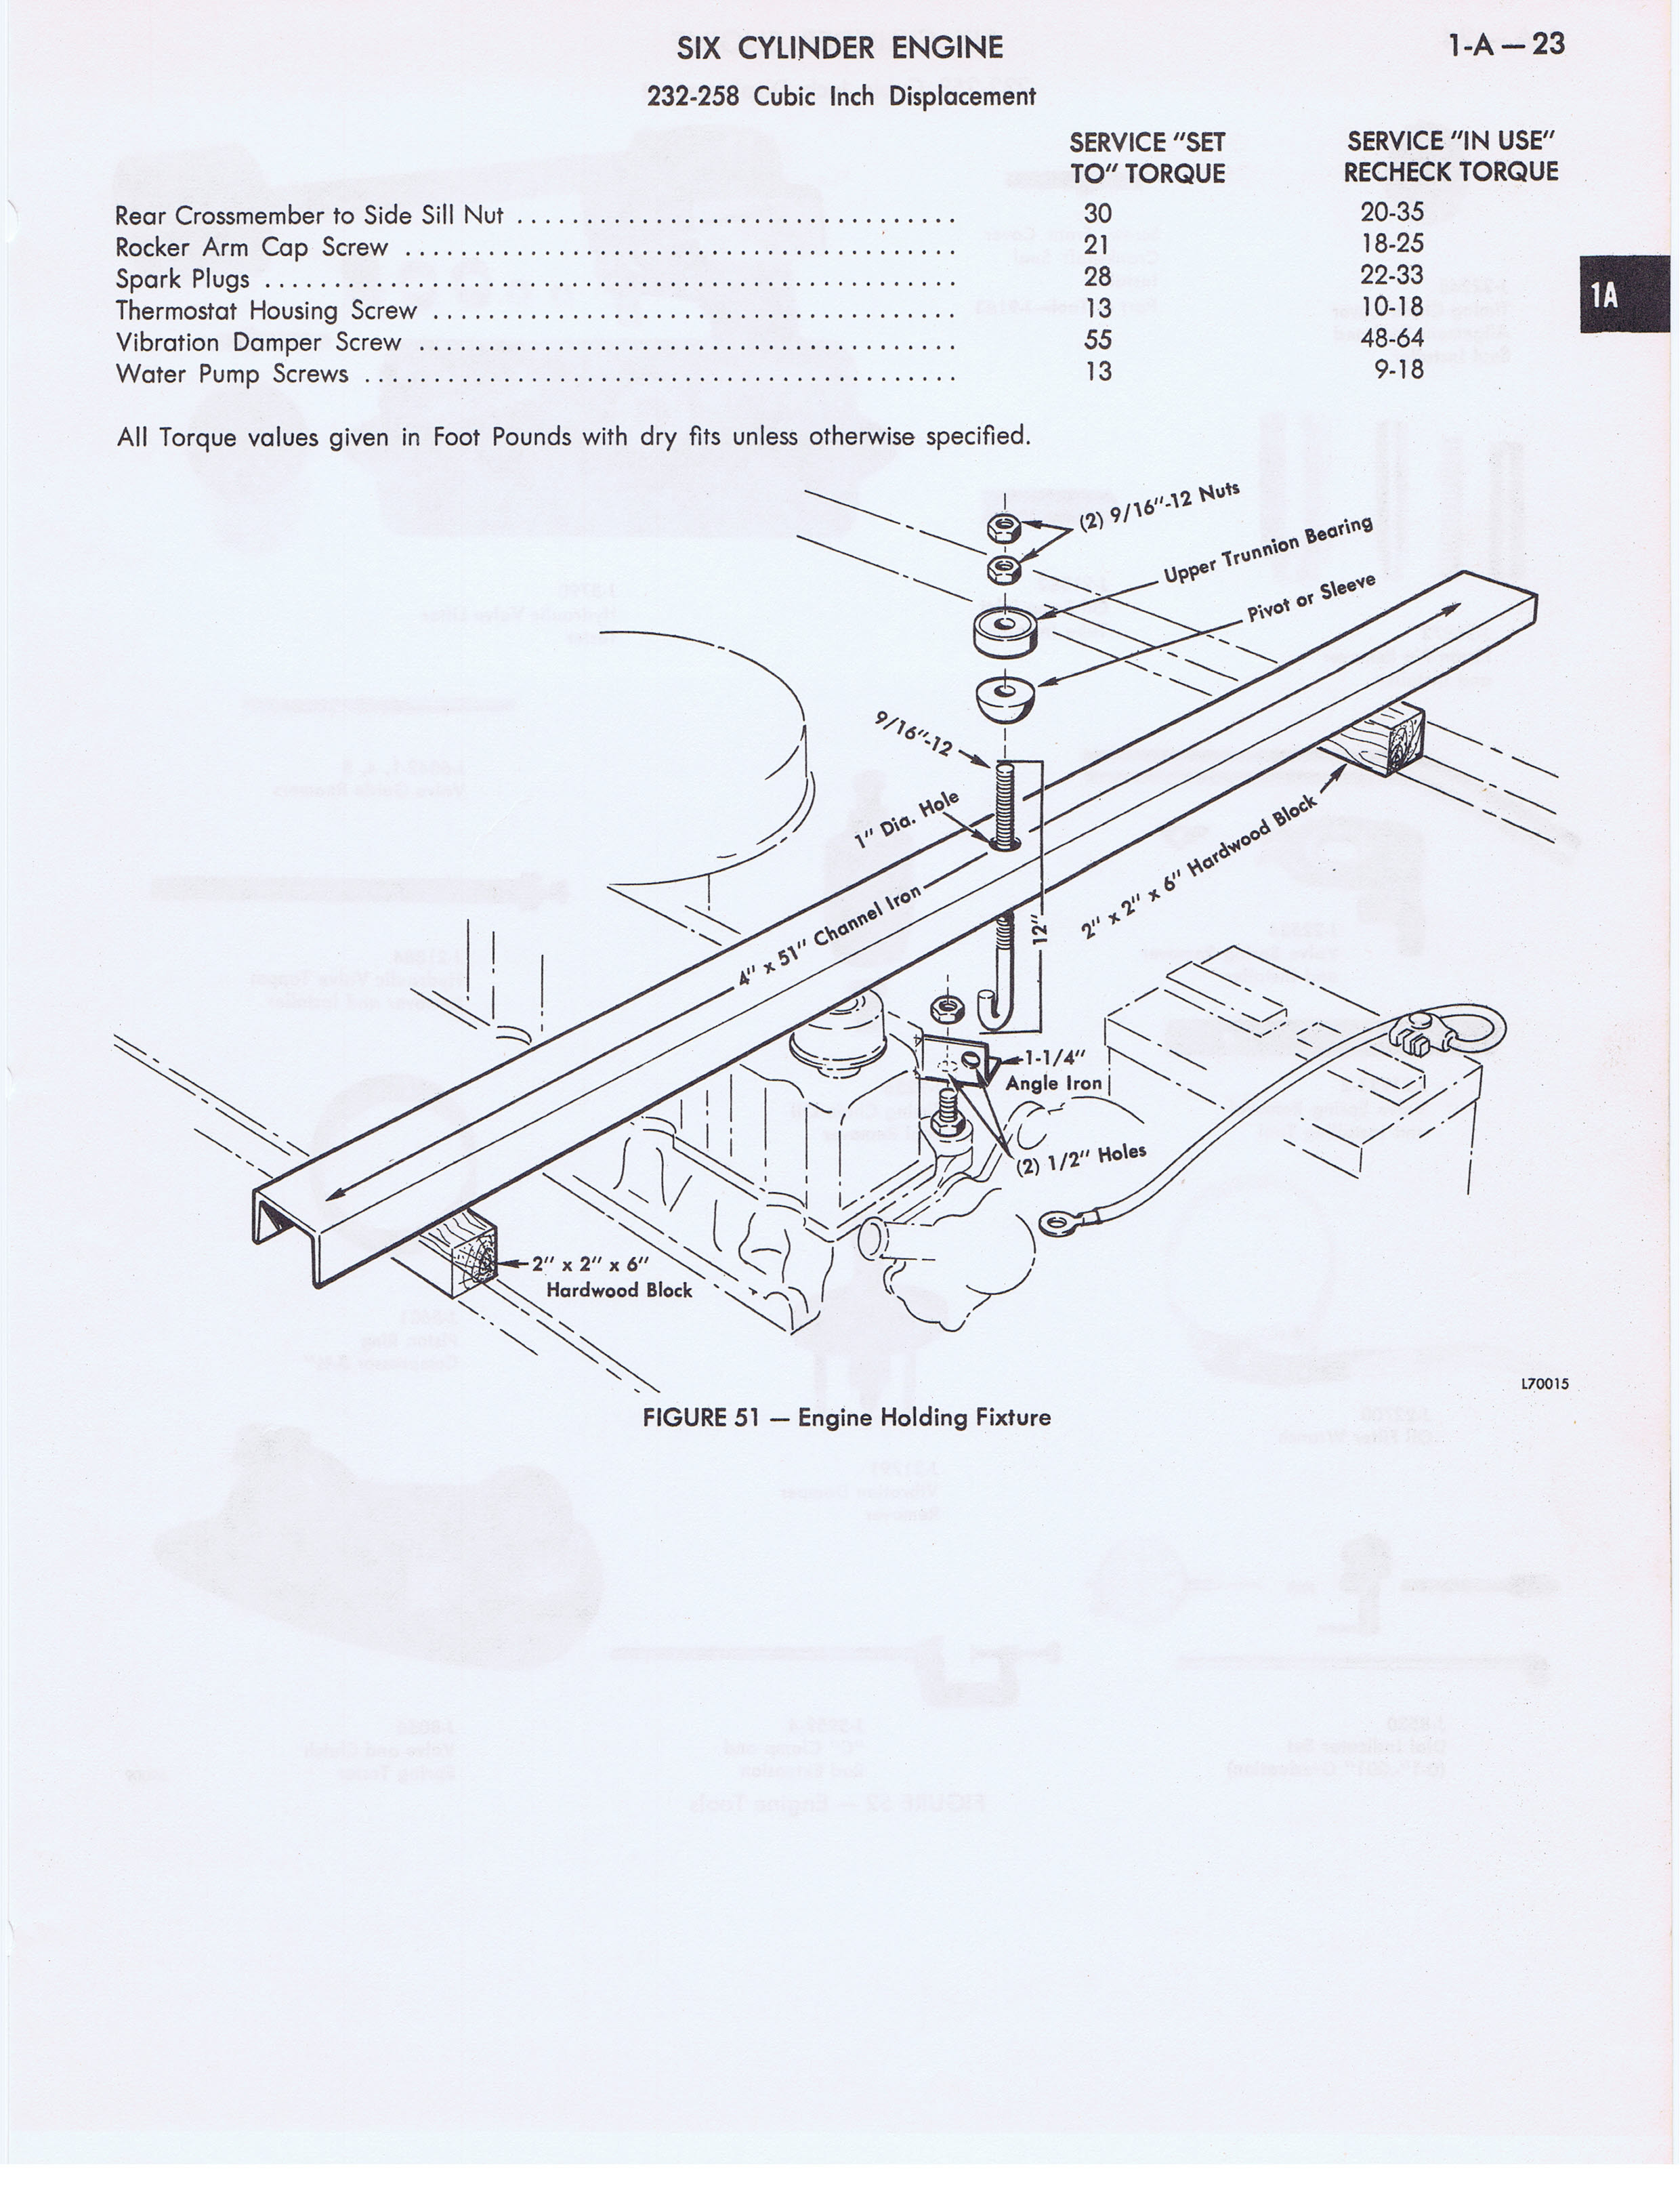 1973 AMC Technical Service Manual page 45 of 487